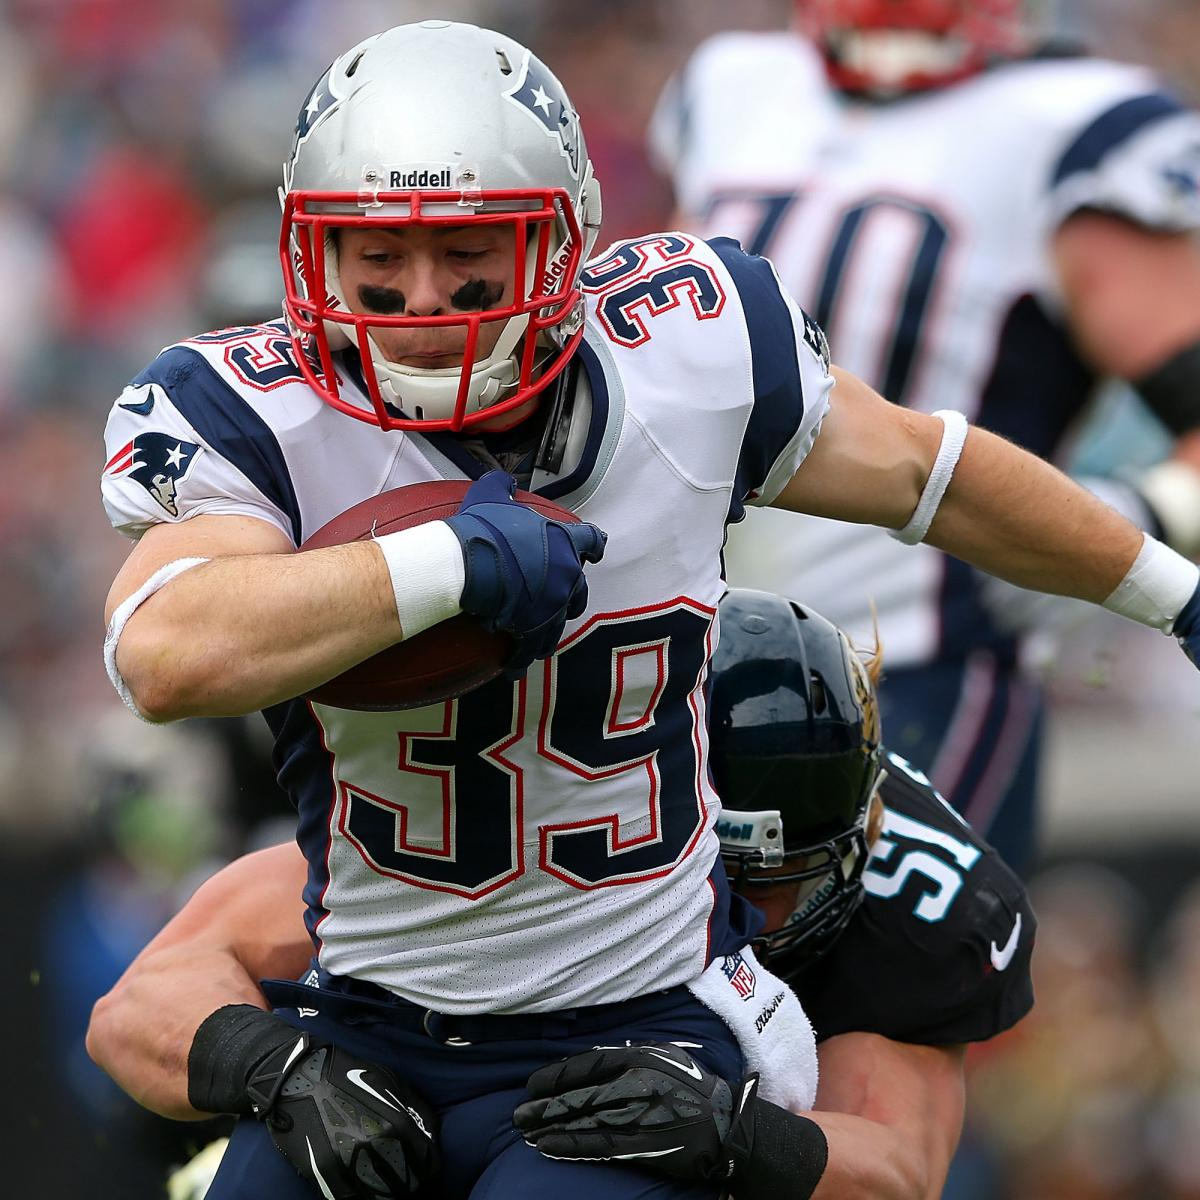 San Diego Chargers Danny Woodhead: How Does The Signing Of Danny Woodhead Impact Ryan Mathews